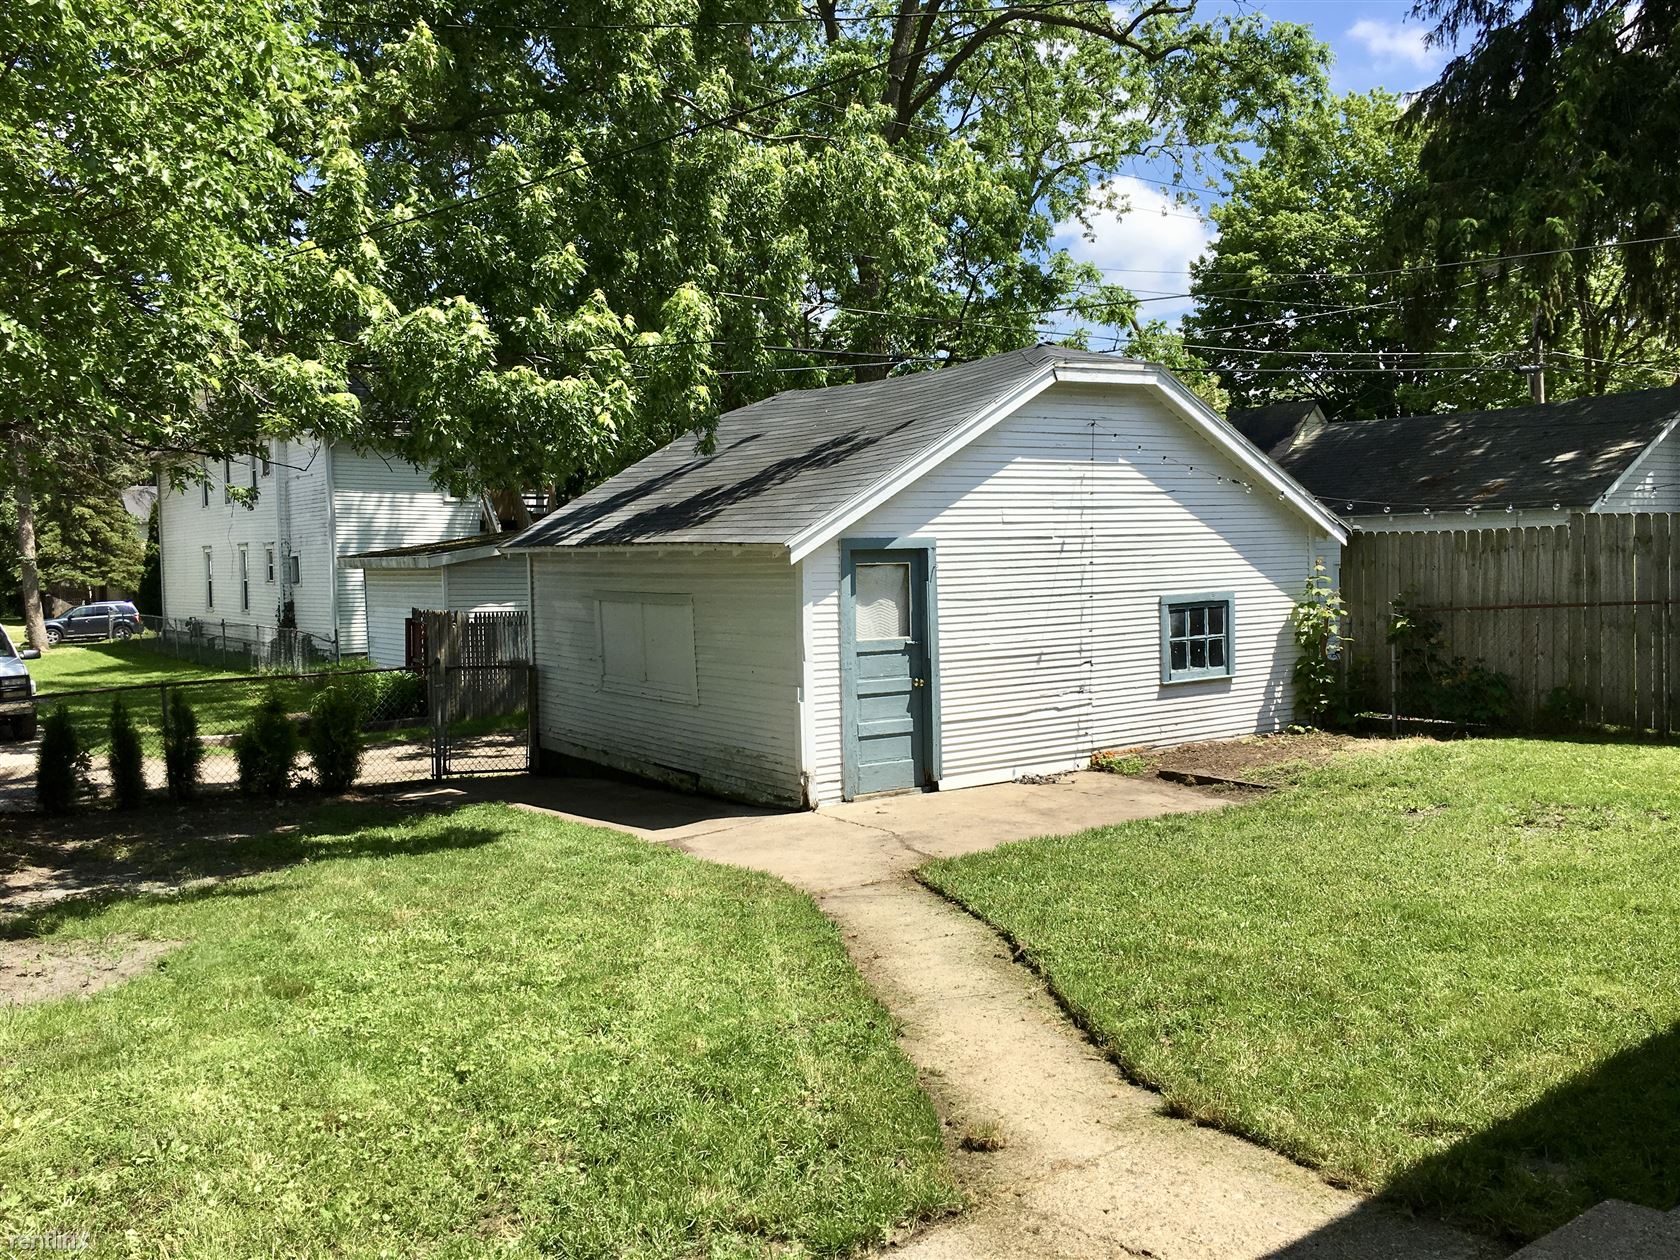 1026 Fremont Ave NW - 1500USD / month